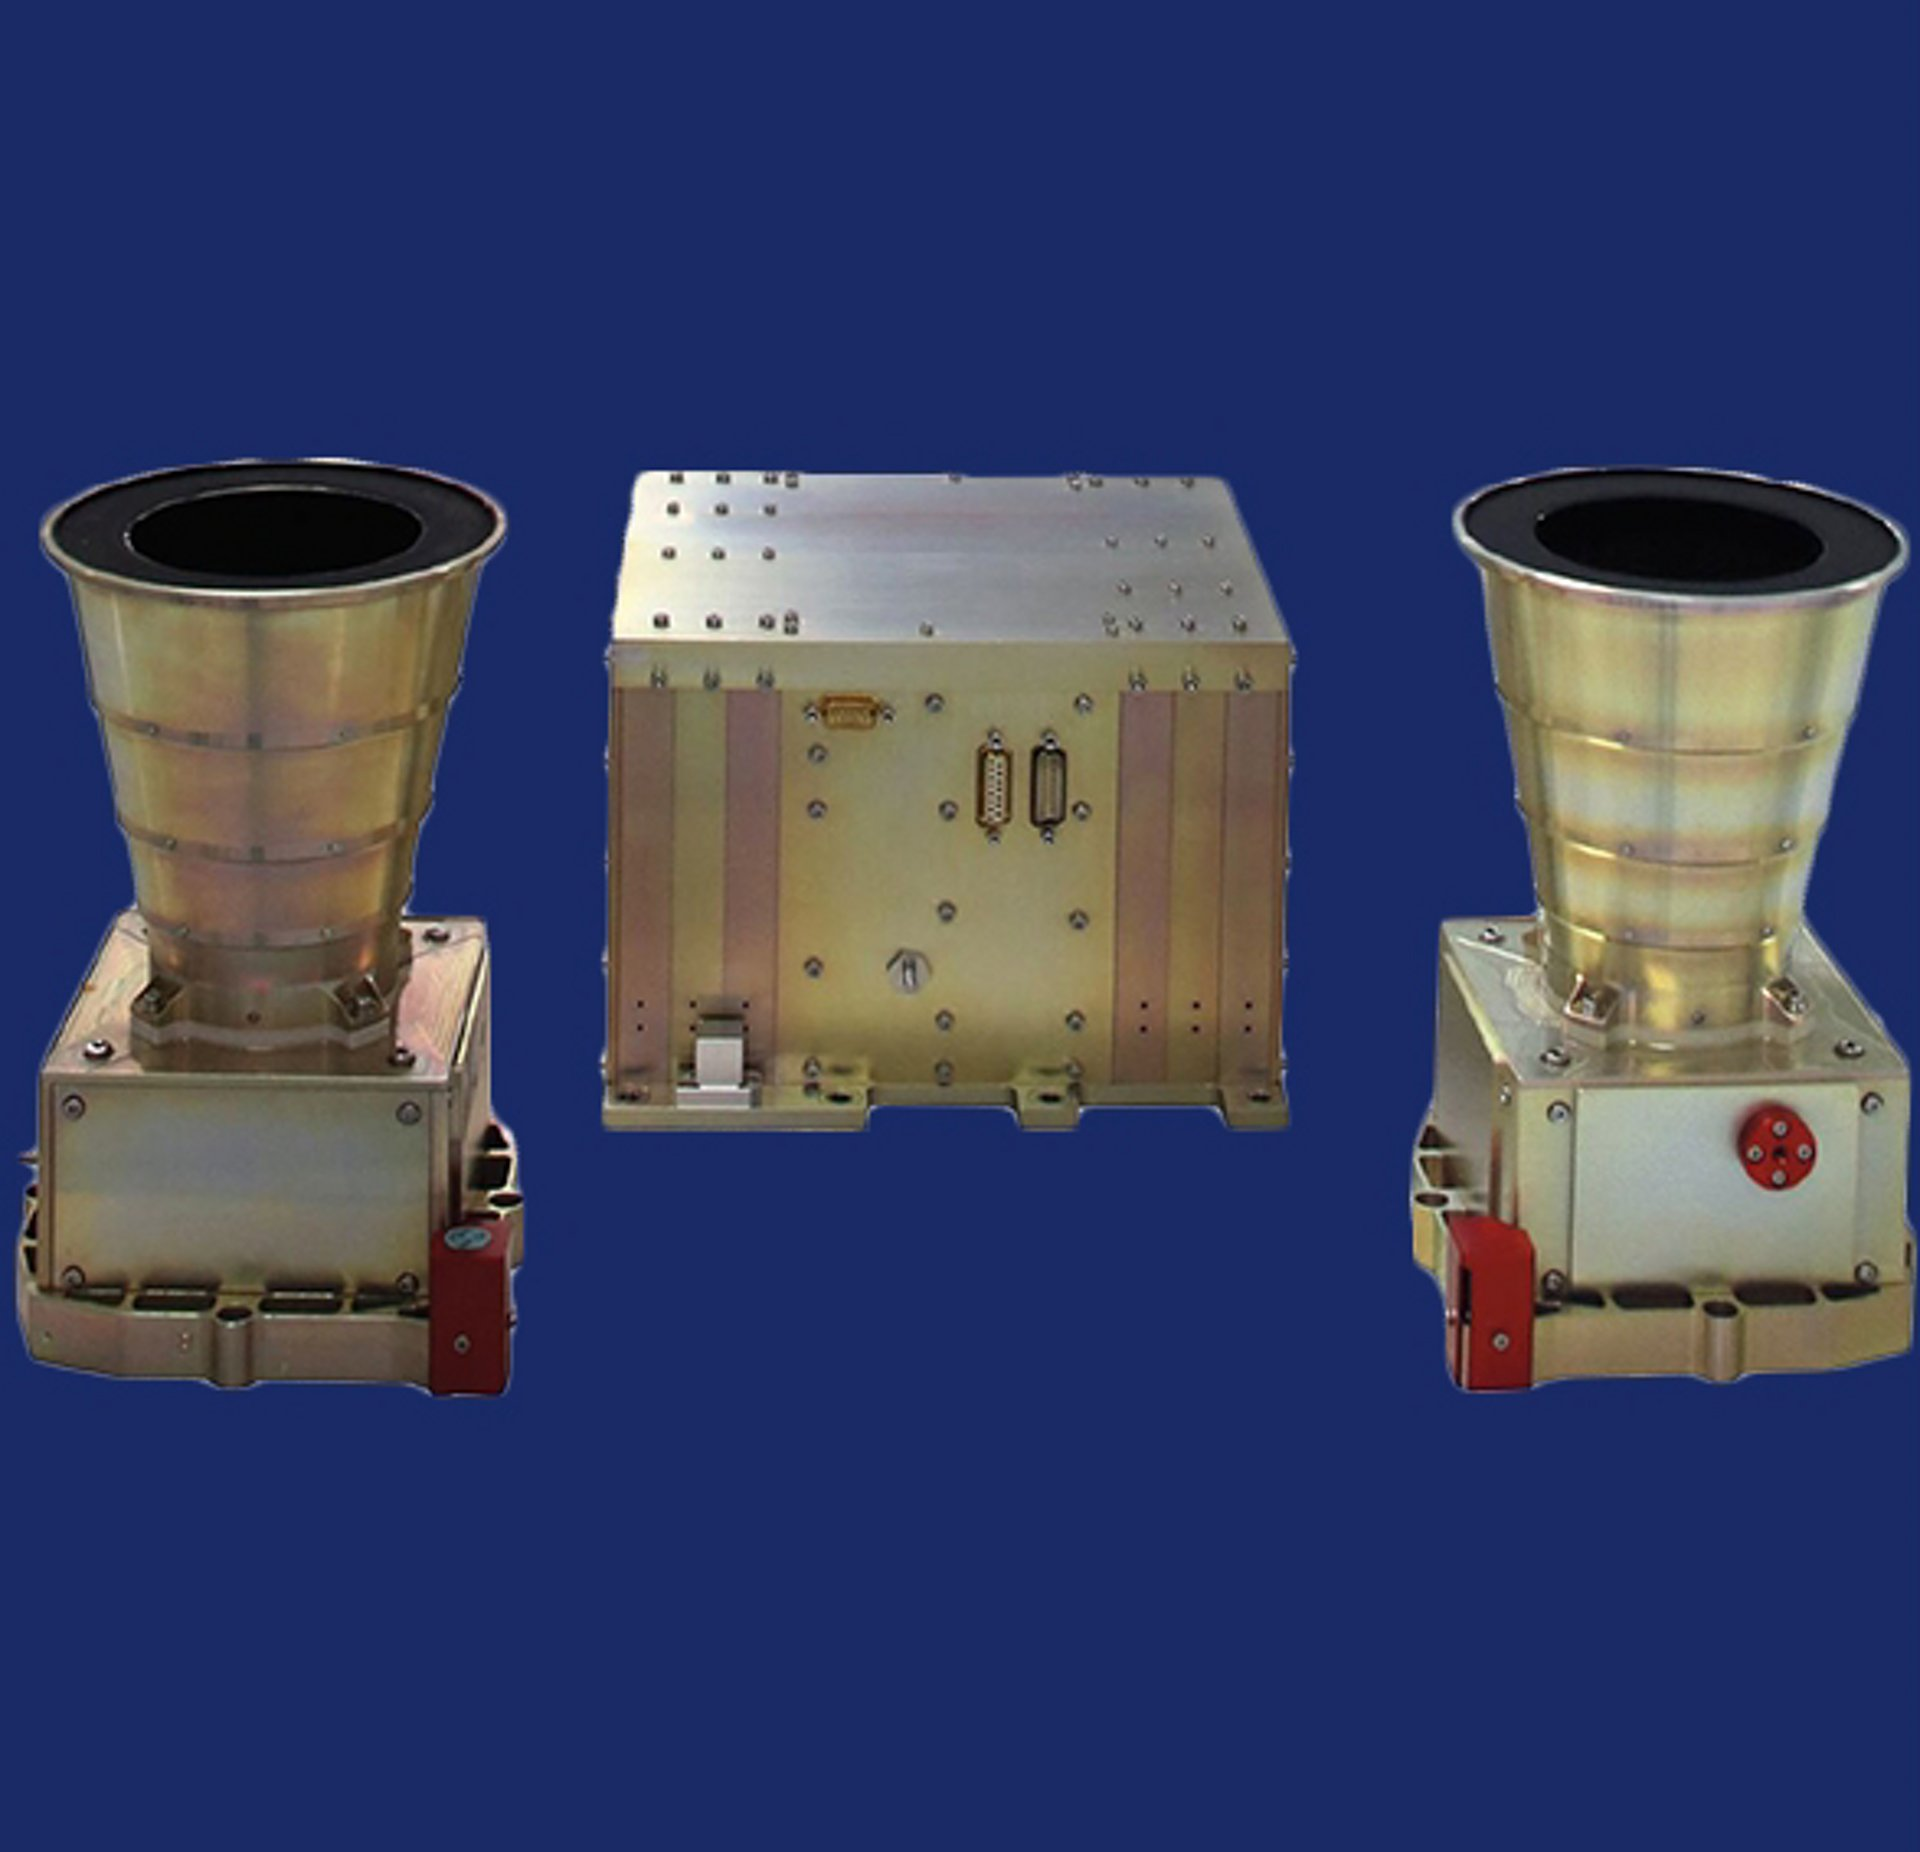 Combined ASTRO star sensor and inertial reference unit